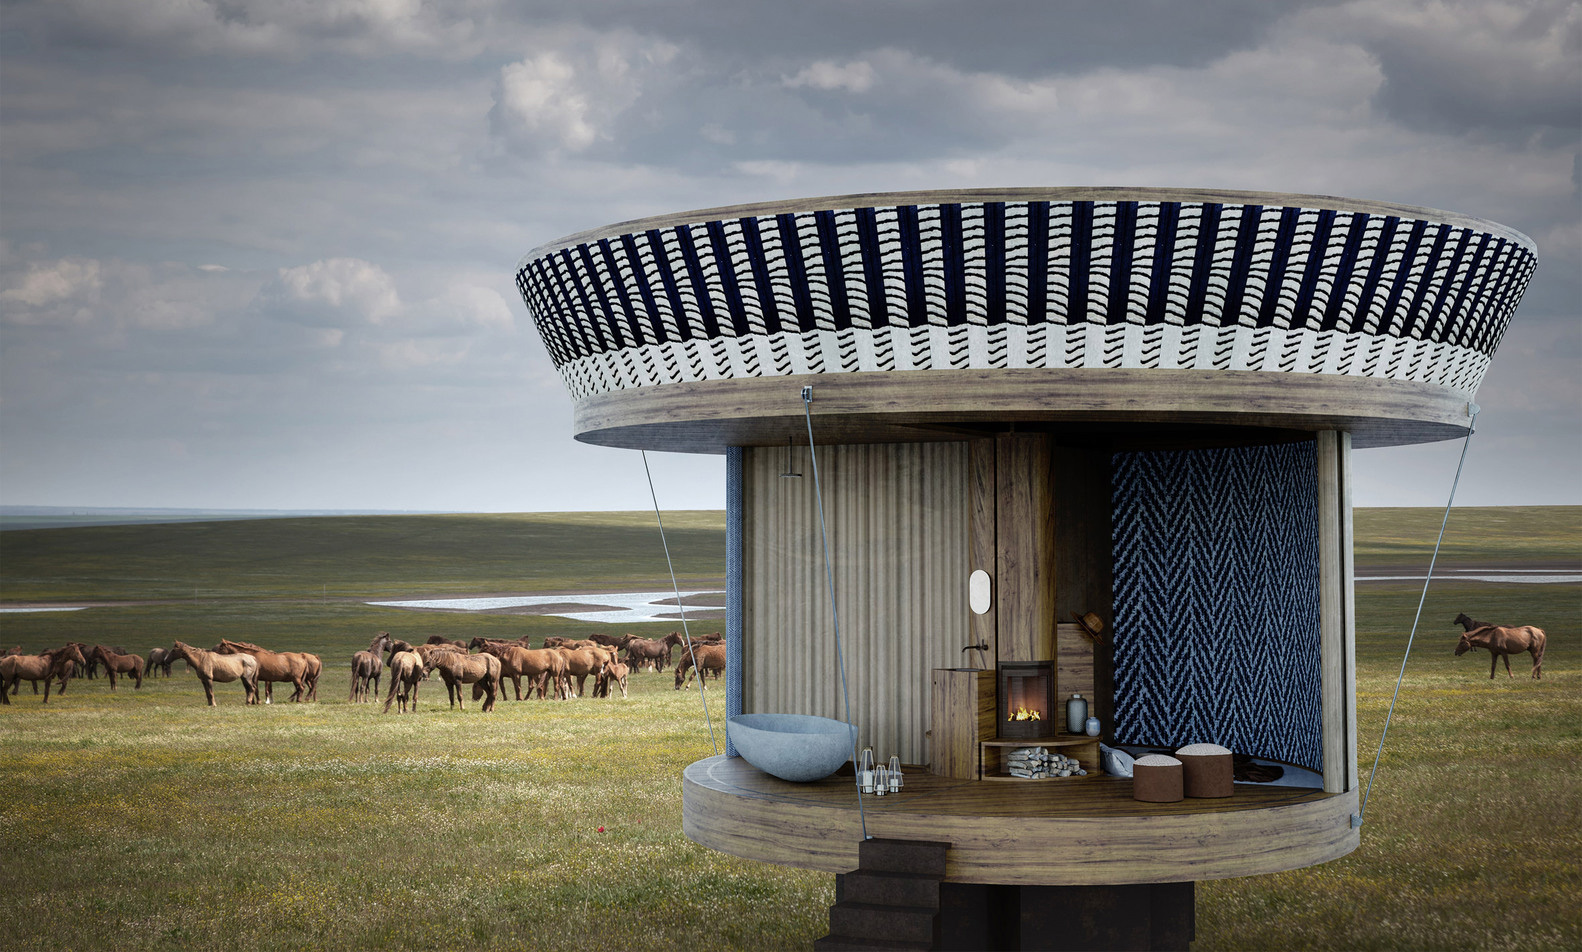 Casa Ojalá is reminiscent of a yurt thanks to its fabric walls and sliding canopy